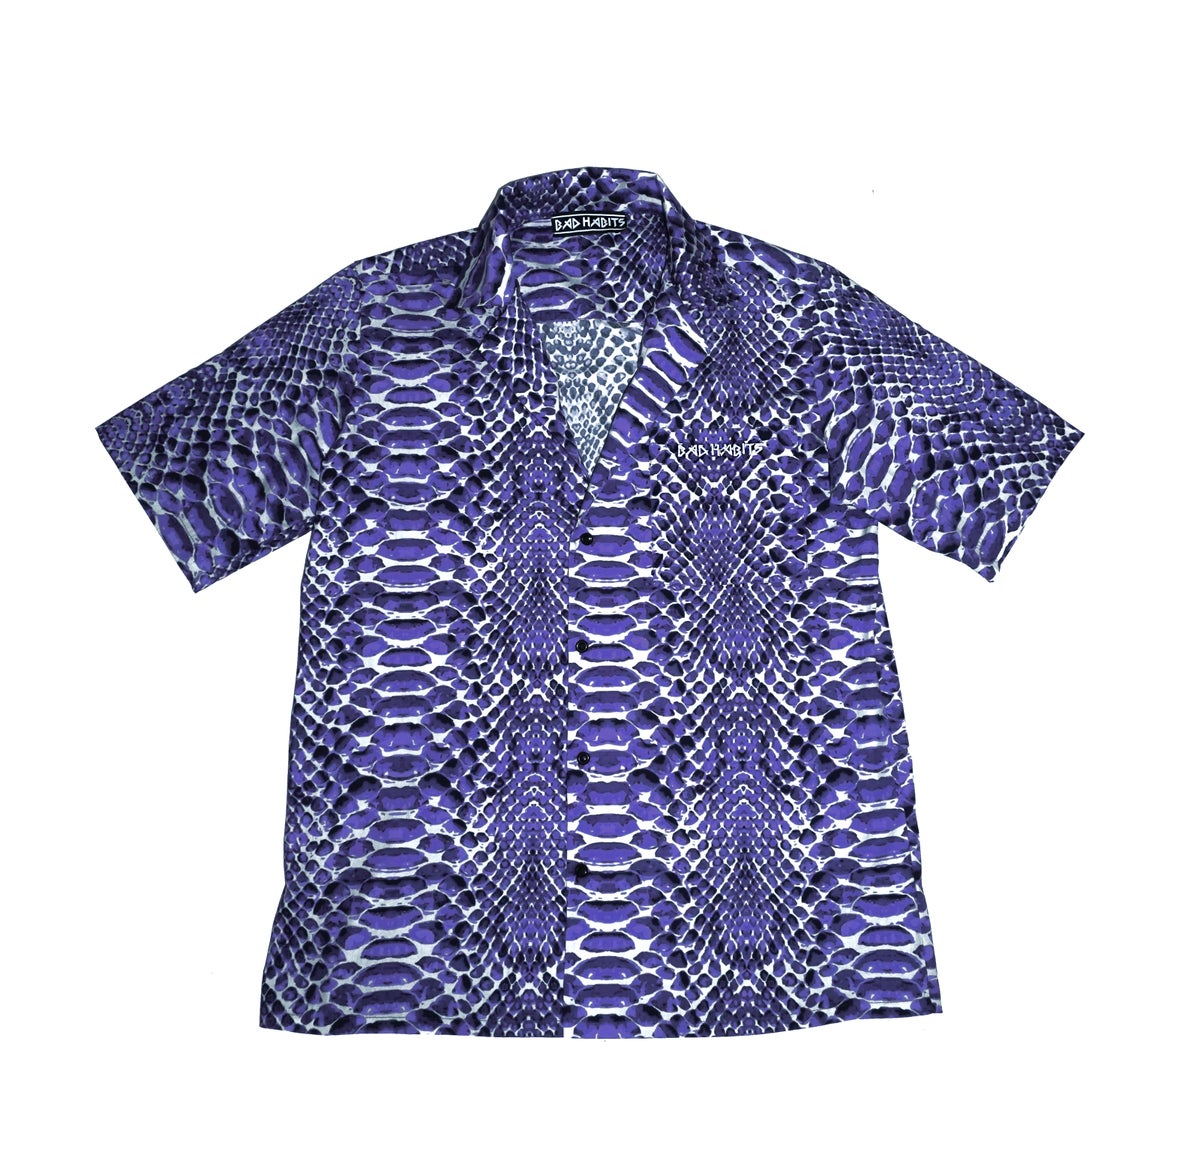 Image of Snakeskin Shirt - Purple